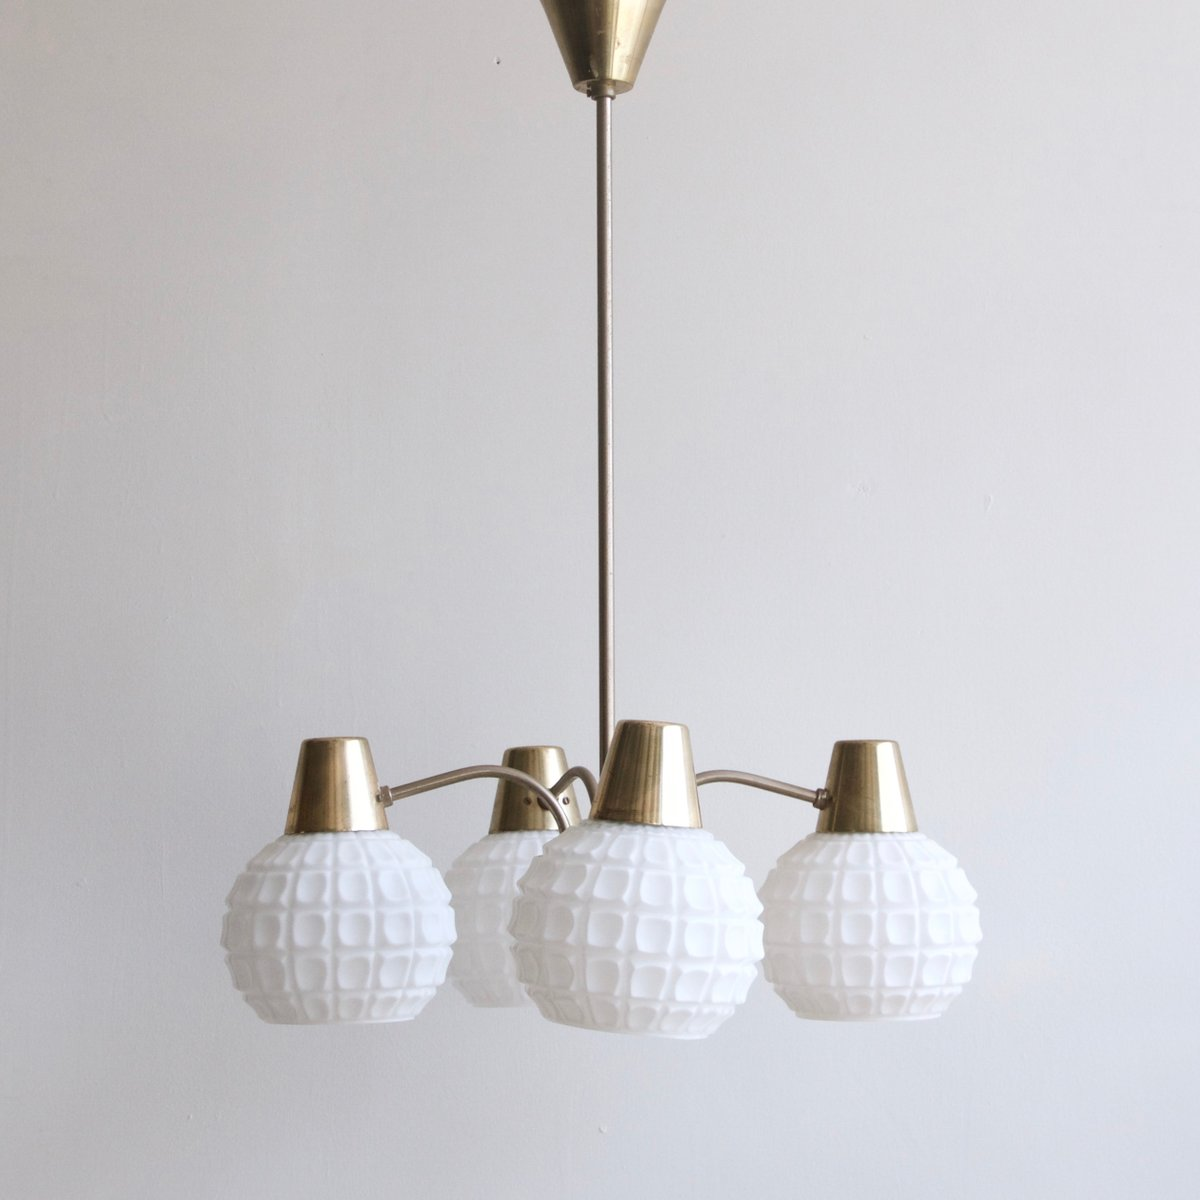 mid century light design home incredible randallhoven com modern pendant lovely